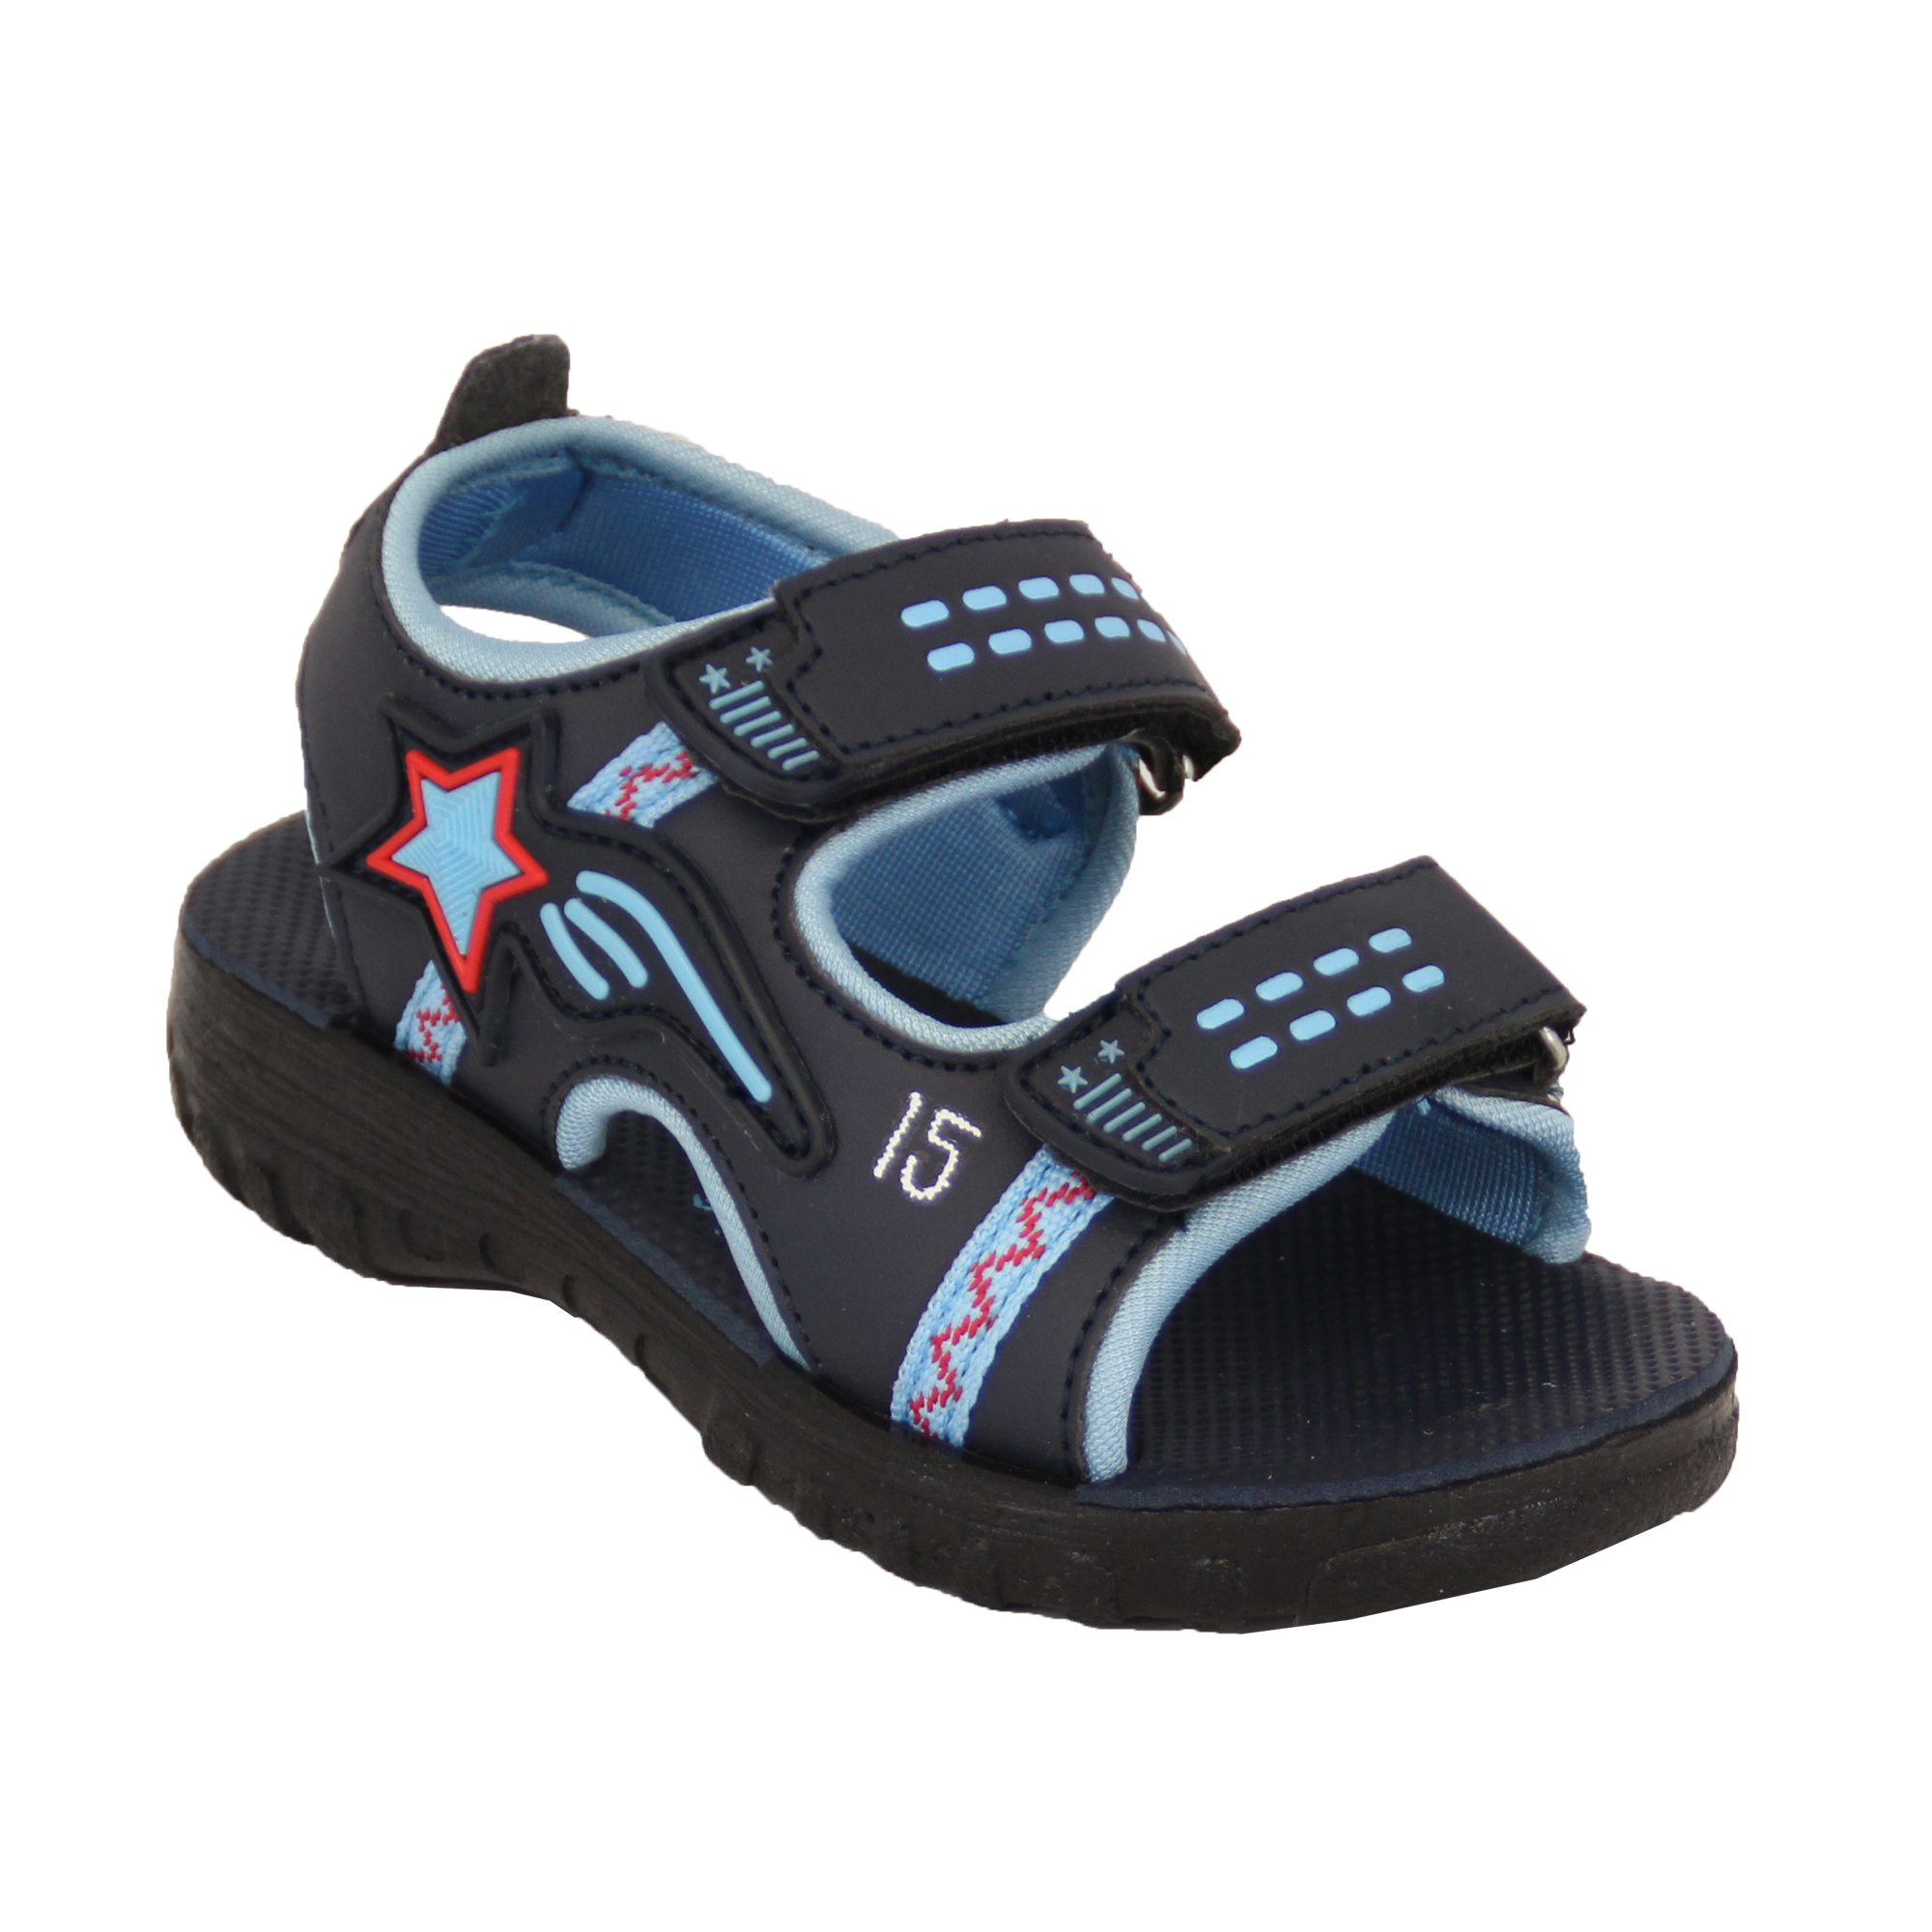 4667c3d3e1b Boys Gladiator Sandals Gezer Kids Strap Beach Sports Summer Hiking ...